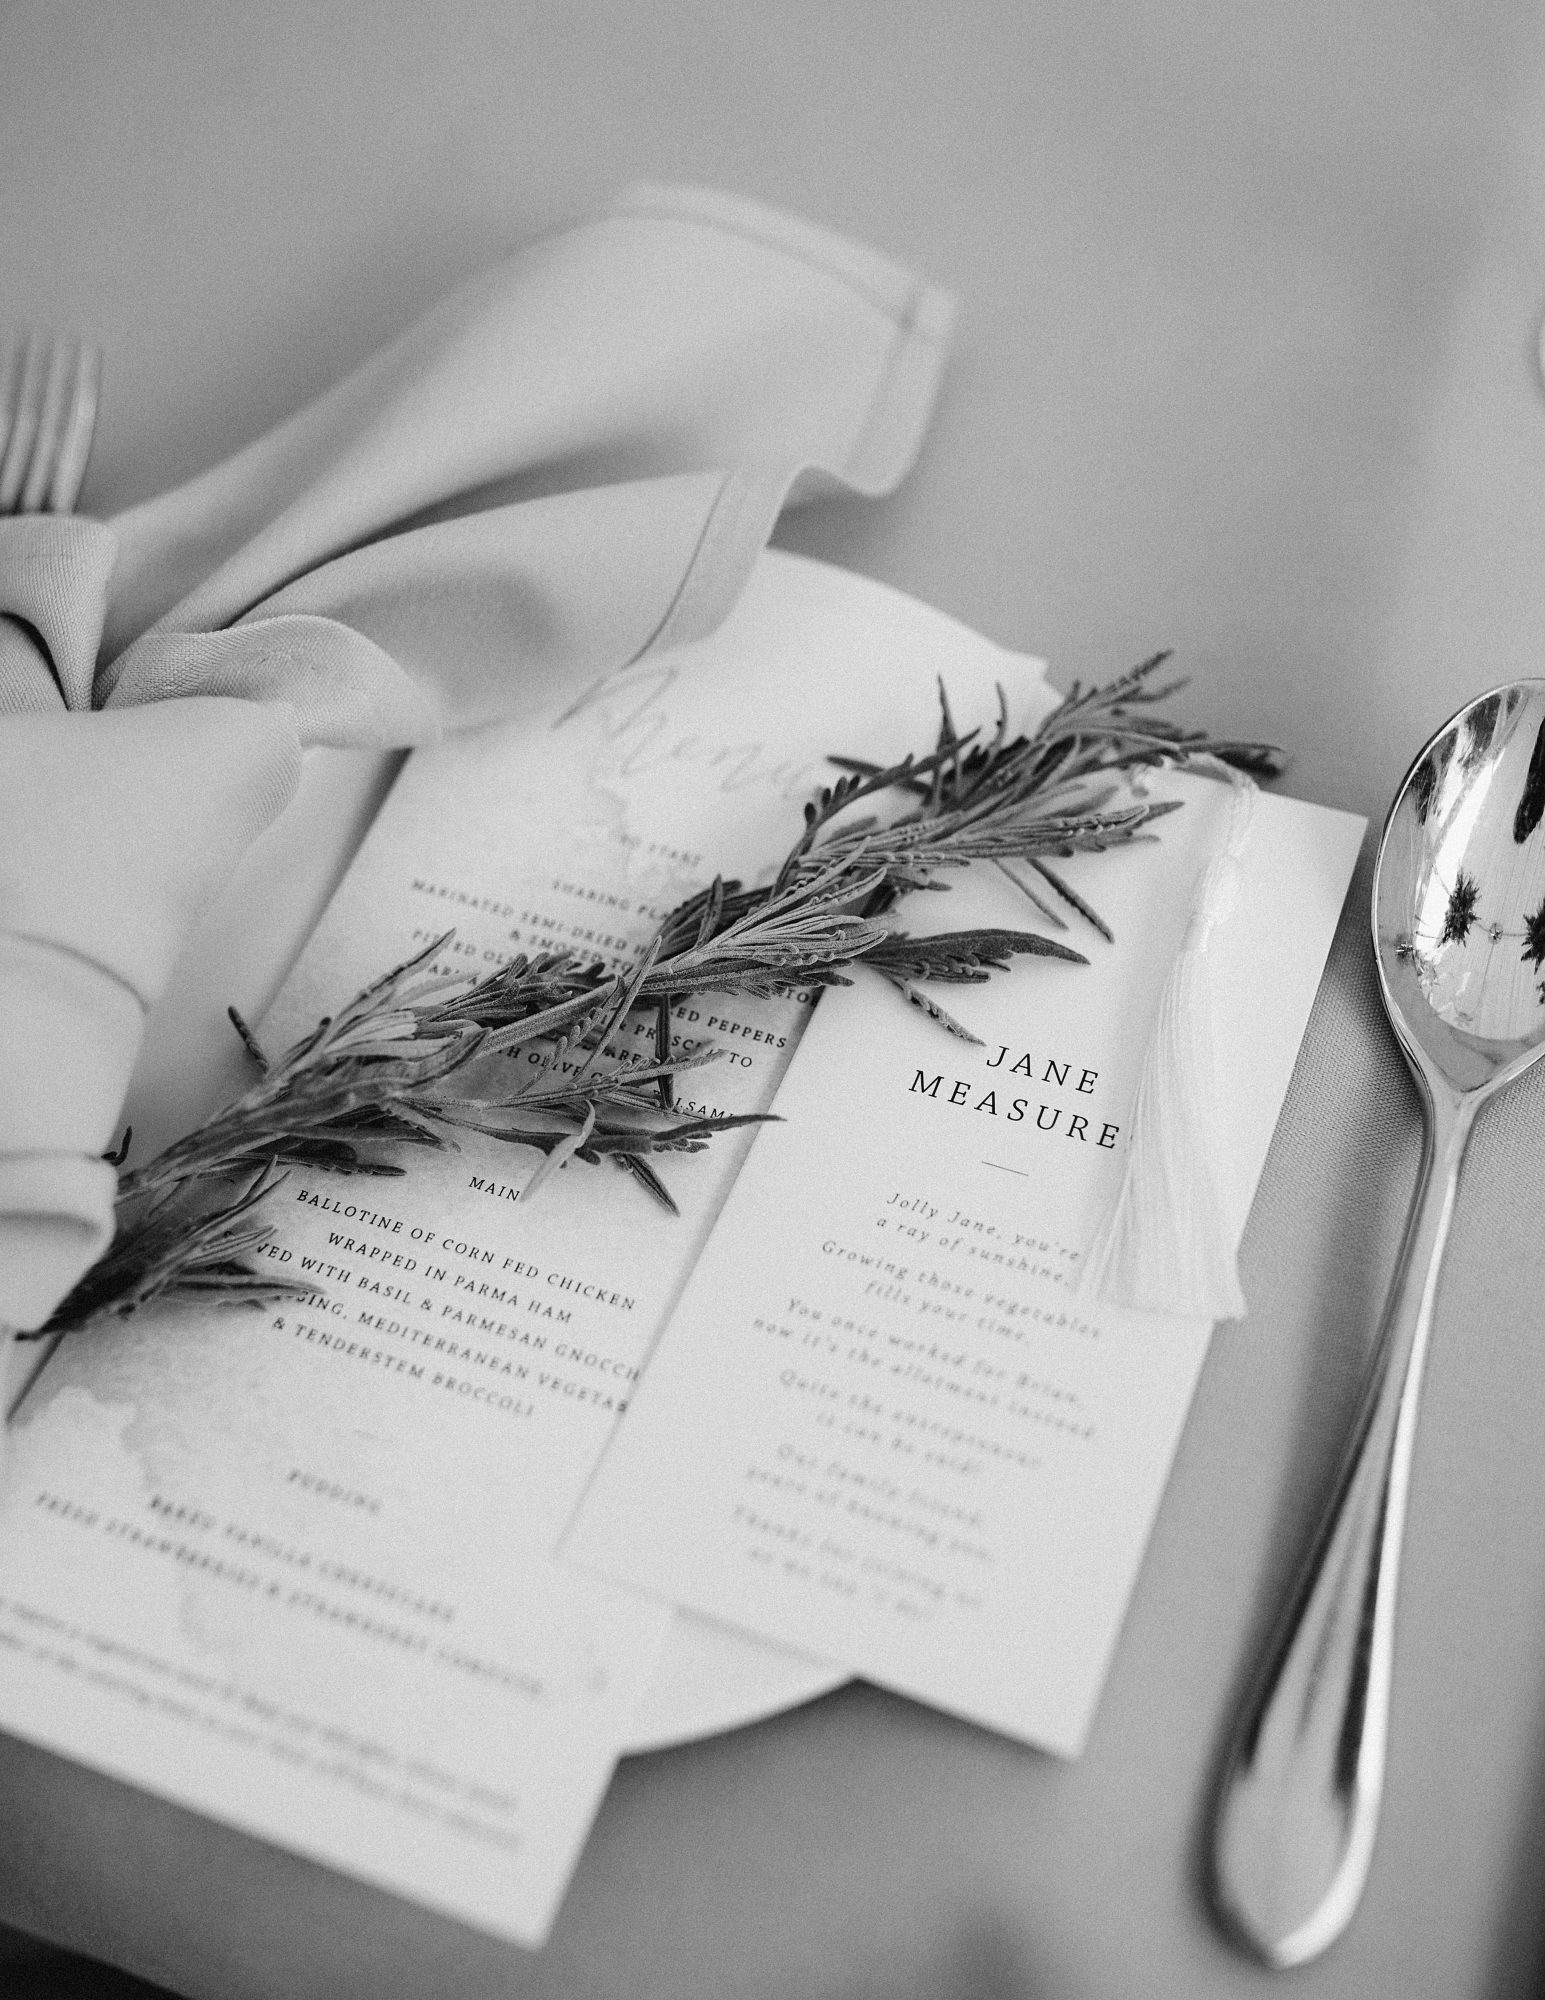 laurie lee wedding reception menu and poem place setting